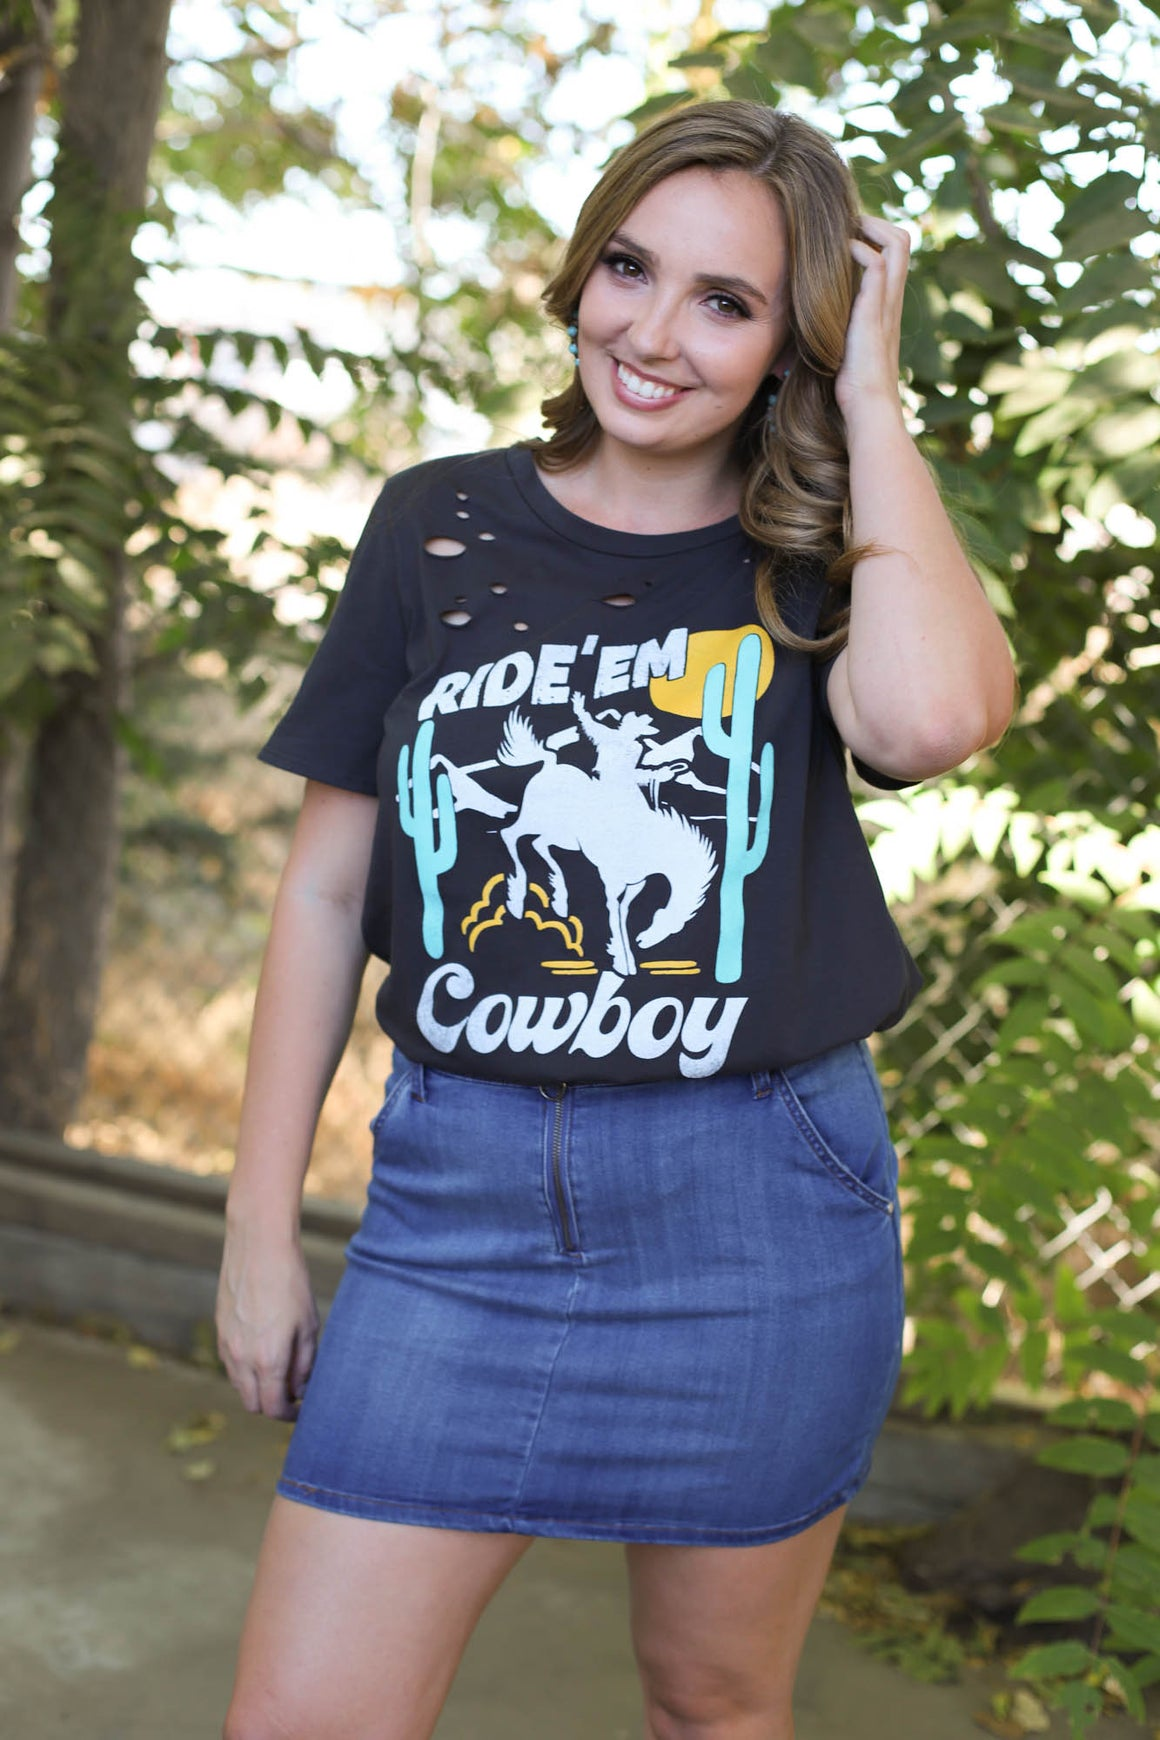 Ride'em Cowboy Graphic Top - ShopSpoiled